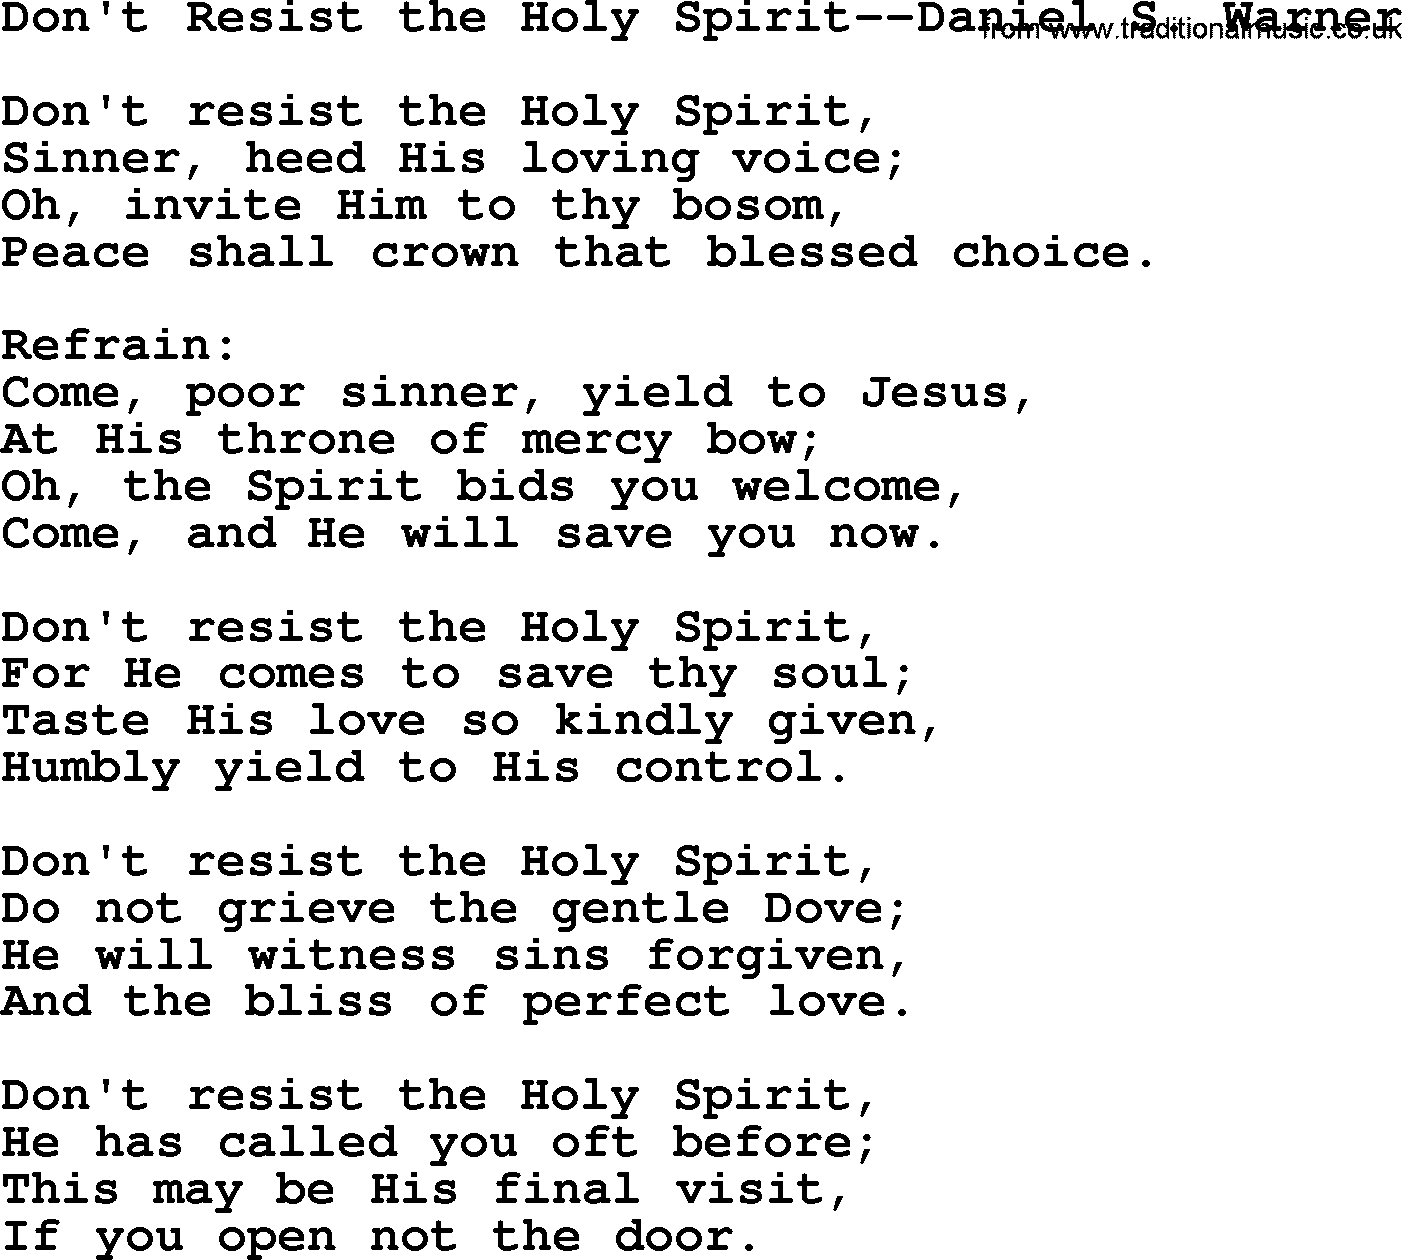 How to open the soul to the Holy Spirit